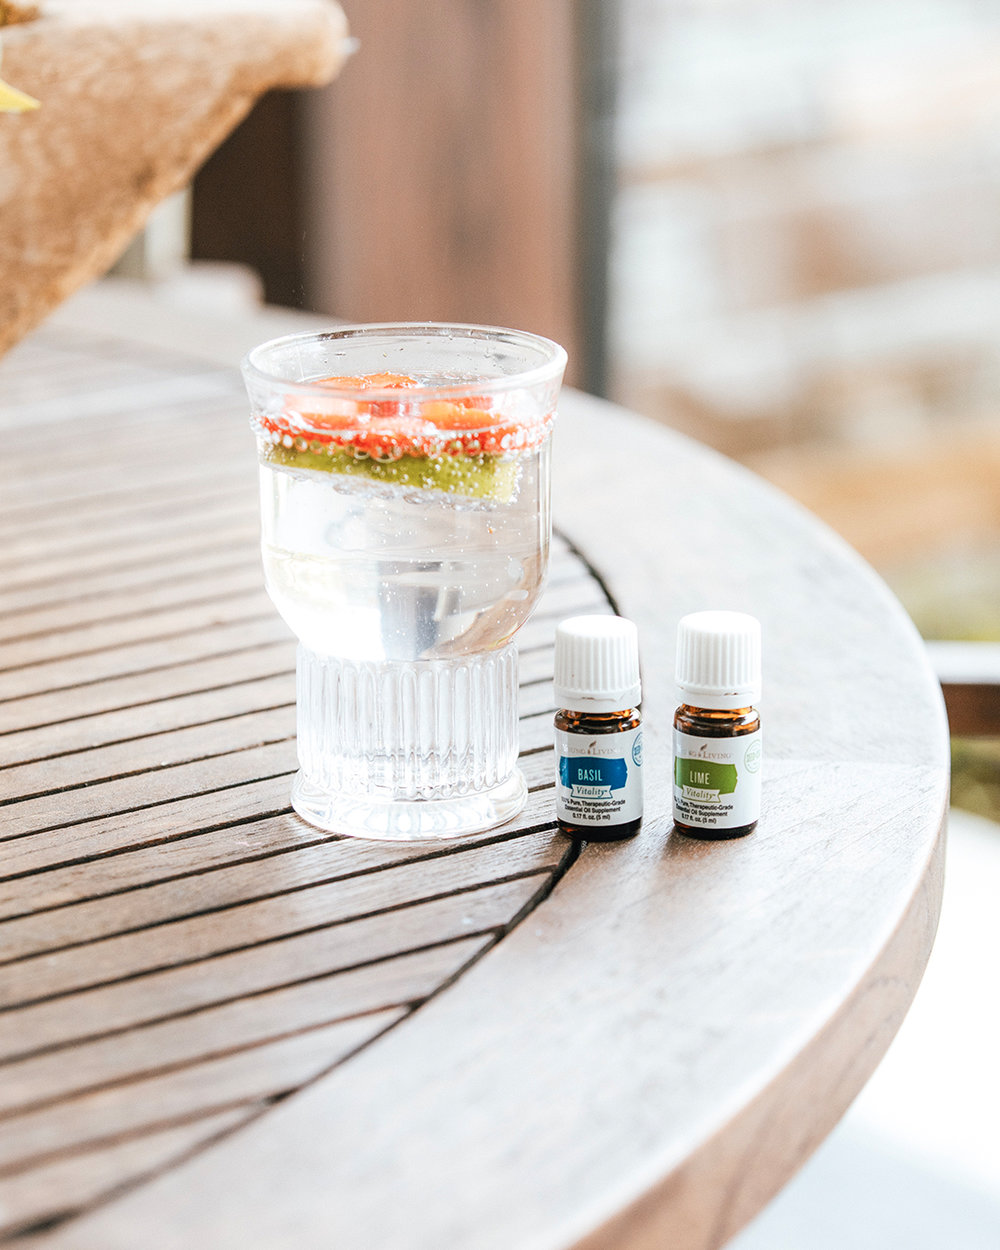 The-Oily-Home-Companion-Recipe-Drink-Summer-Spring-Spritzer-LaCroix-Lime-Strawberry-Basil-Honey-Vitality-Essential-Oils-Young-Living2.jpg